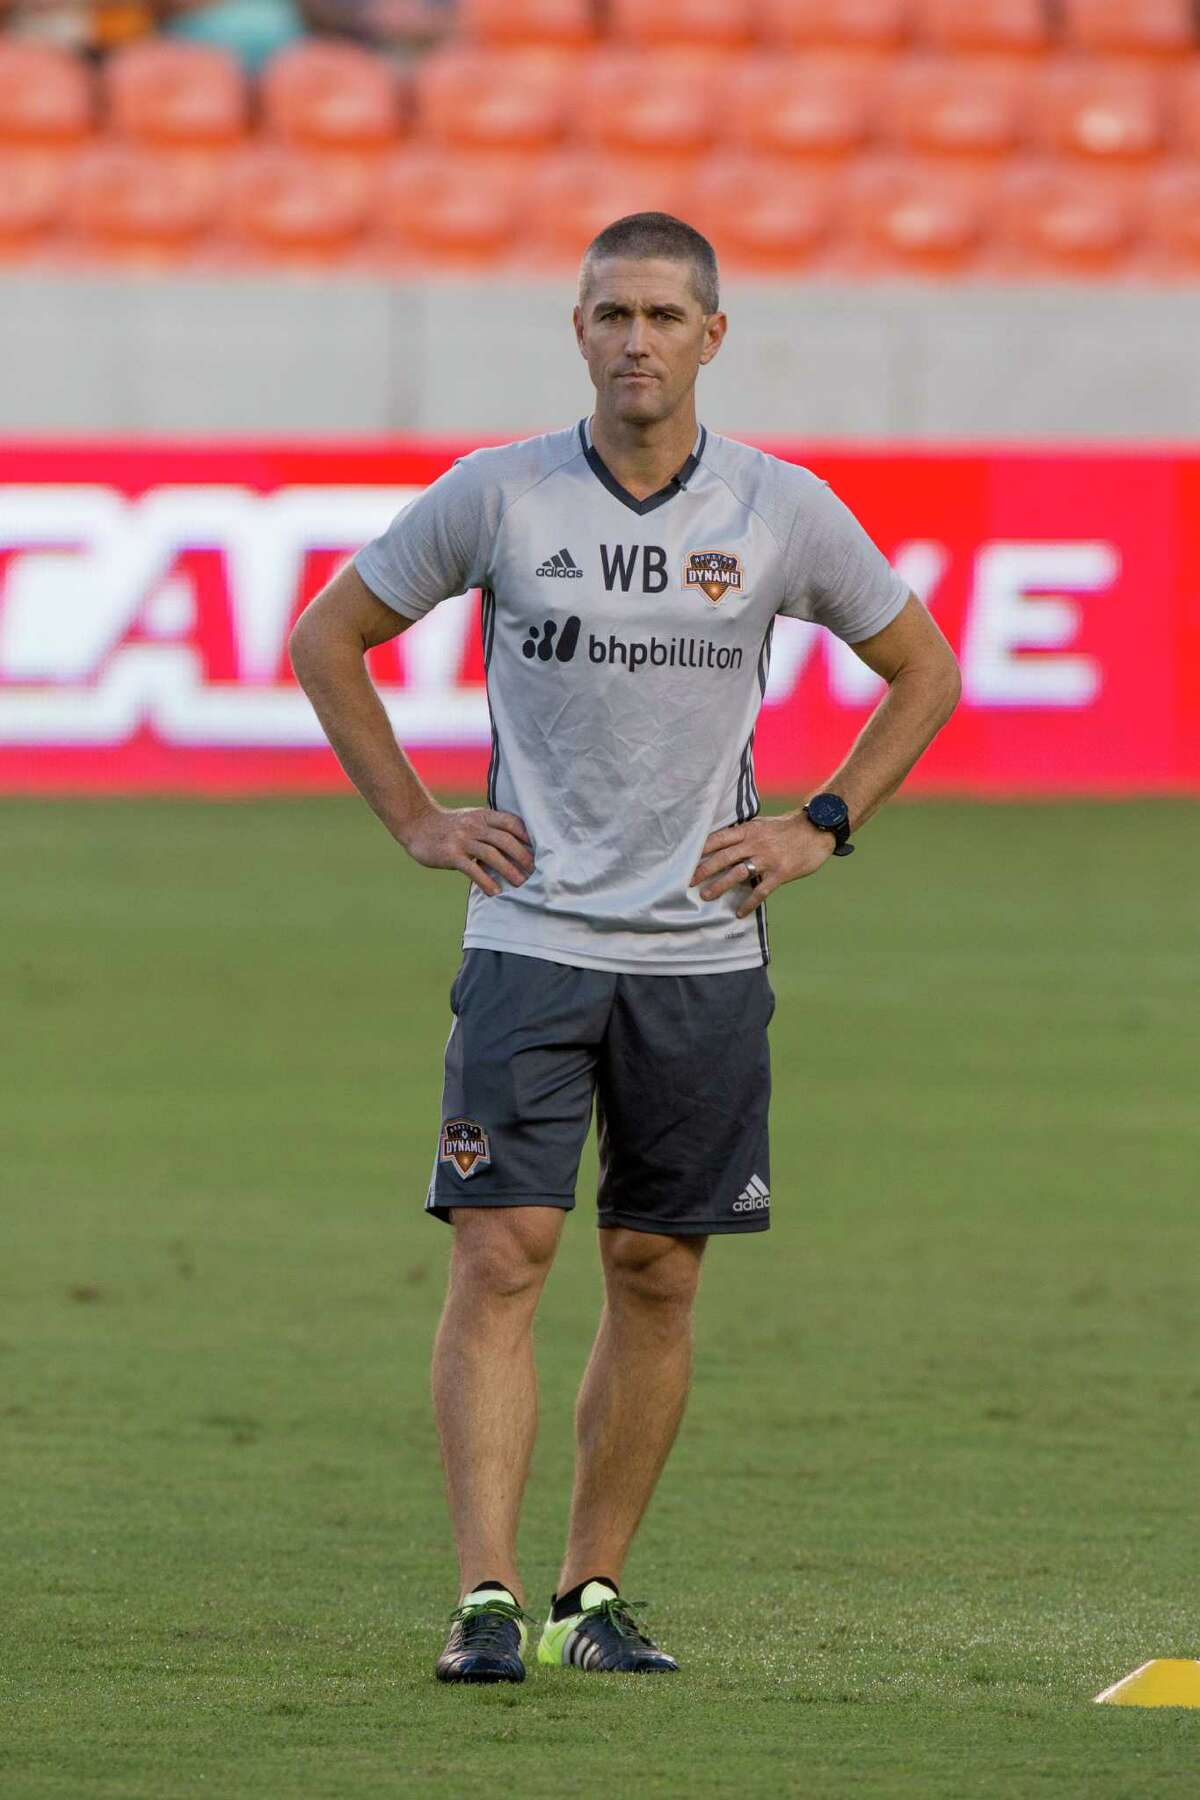 Houston Dynamo interim manager Wade Barrett on the field during practice before action between the between the Houston Dynamo and the San Jose Earthquakes during an MLS soccer game at BBVA Compass, Sunday, July 31, 2016, in Houston. (Juan DeLeon/for the Houston Chronicle)